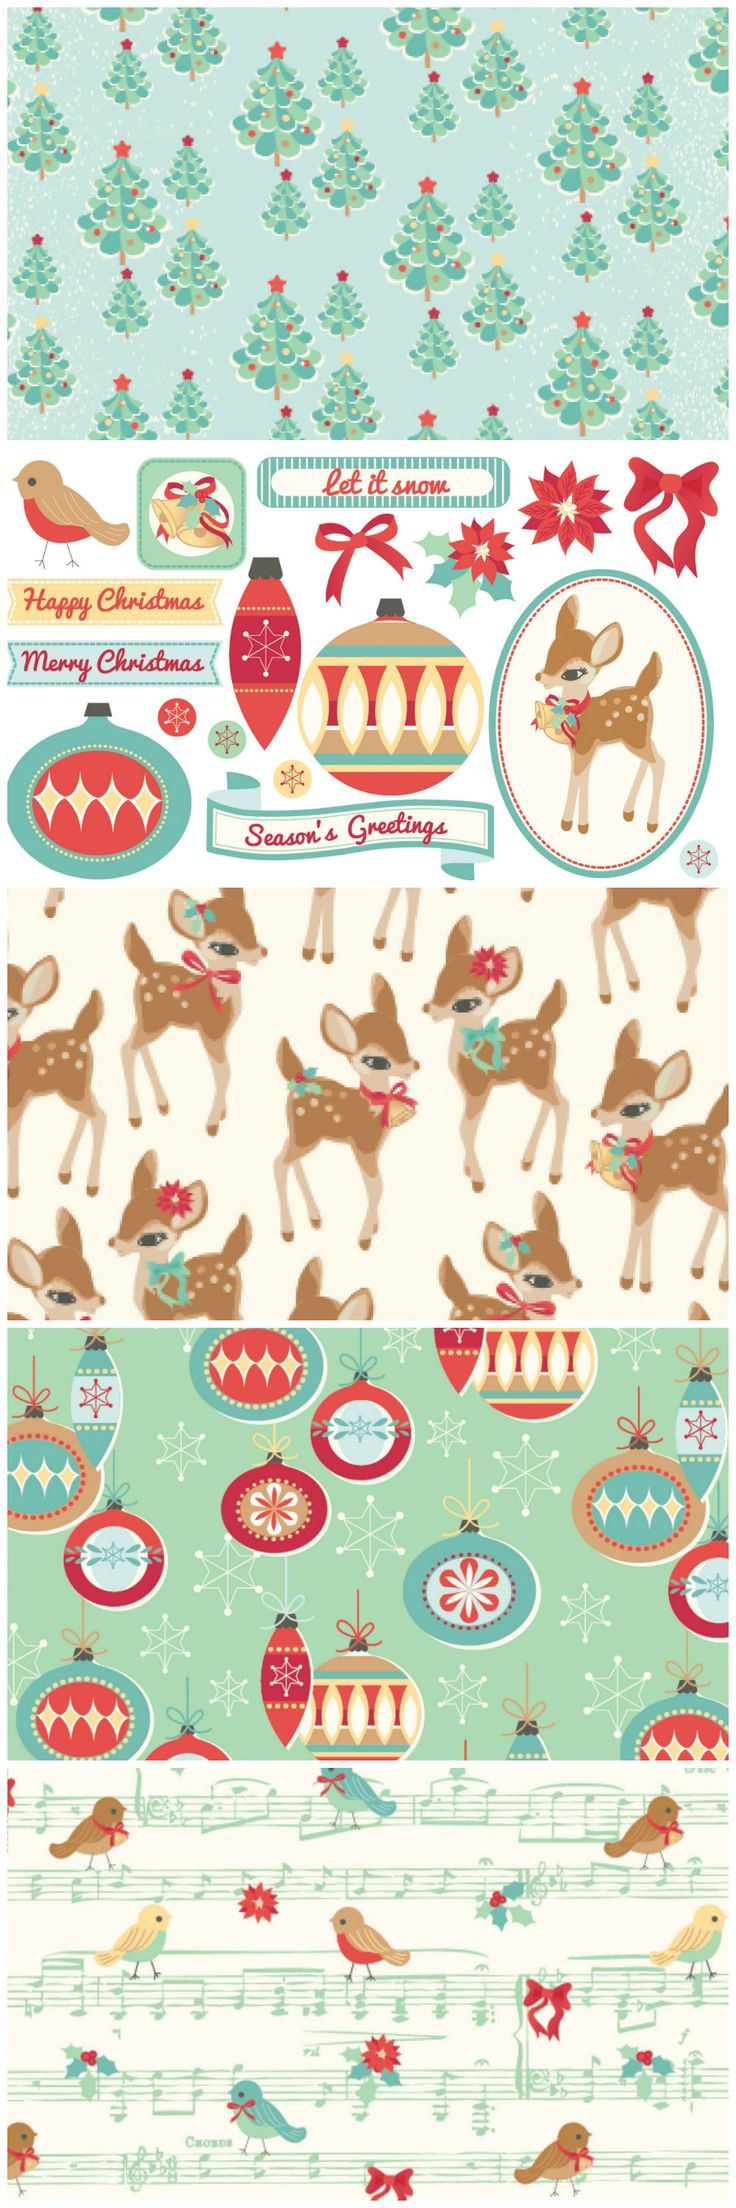 Free Printable Retro Christmas Digital Kit from the Papercraft Inspirations Magazine